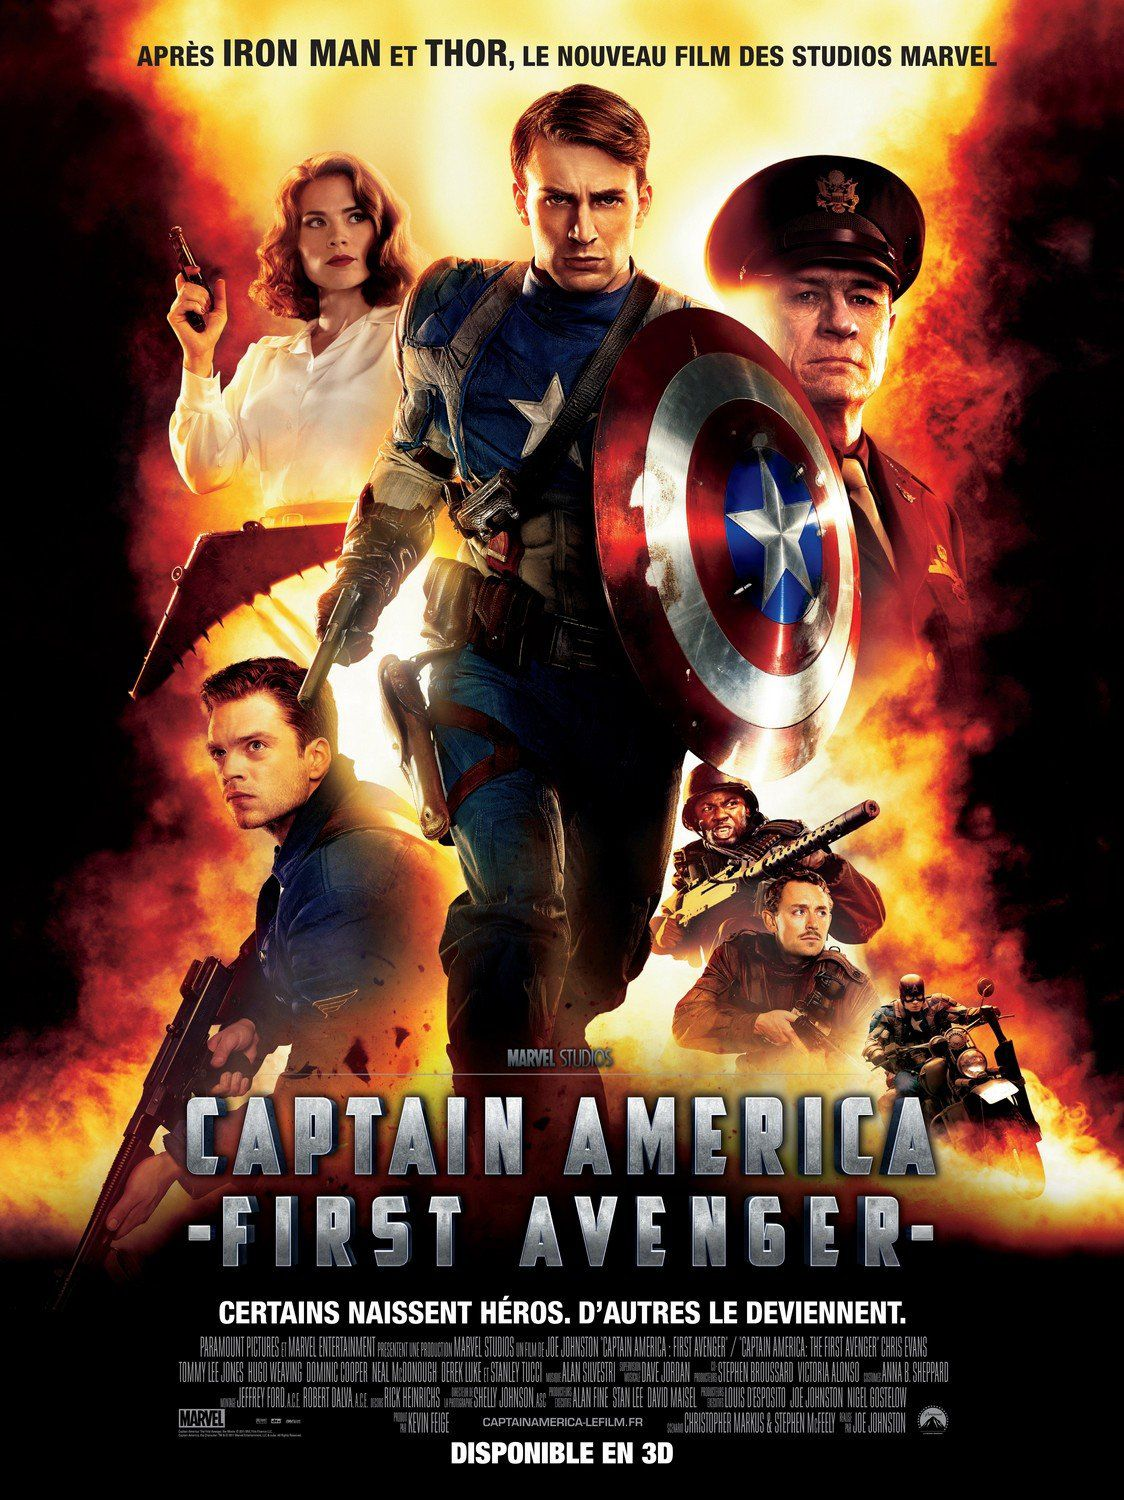 Captain America - the First Avenger - Capitan America - Marvel film poster